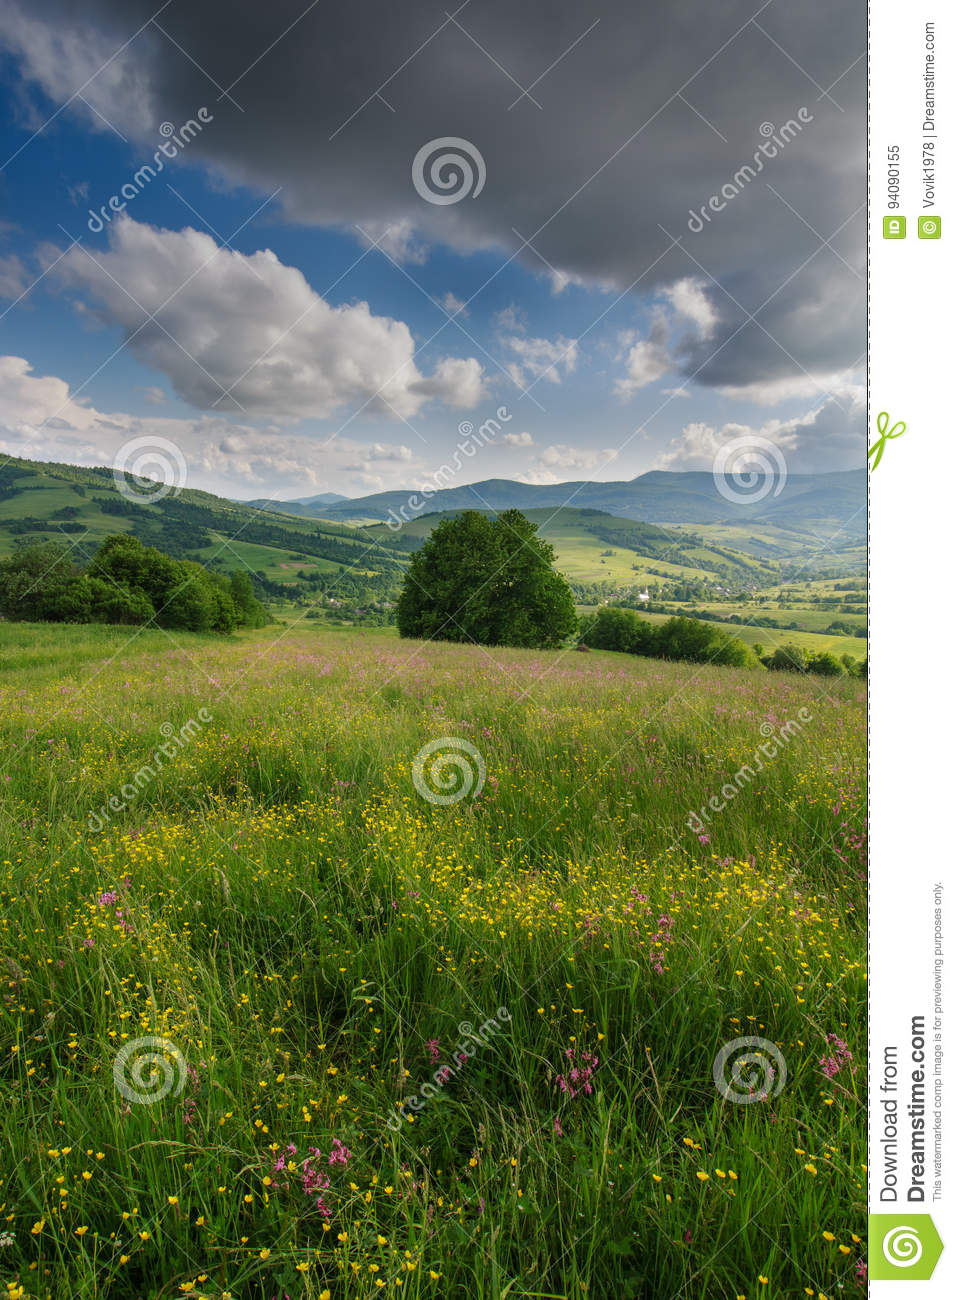 View of the blooming flowers, summer meadow in the mountains and blue cloudy sky.